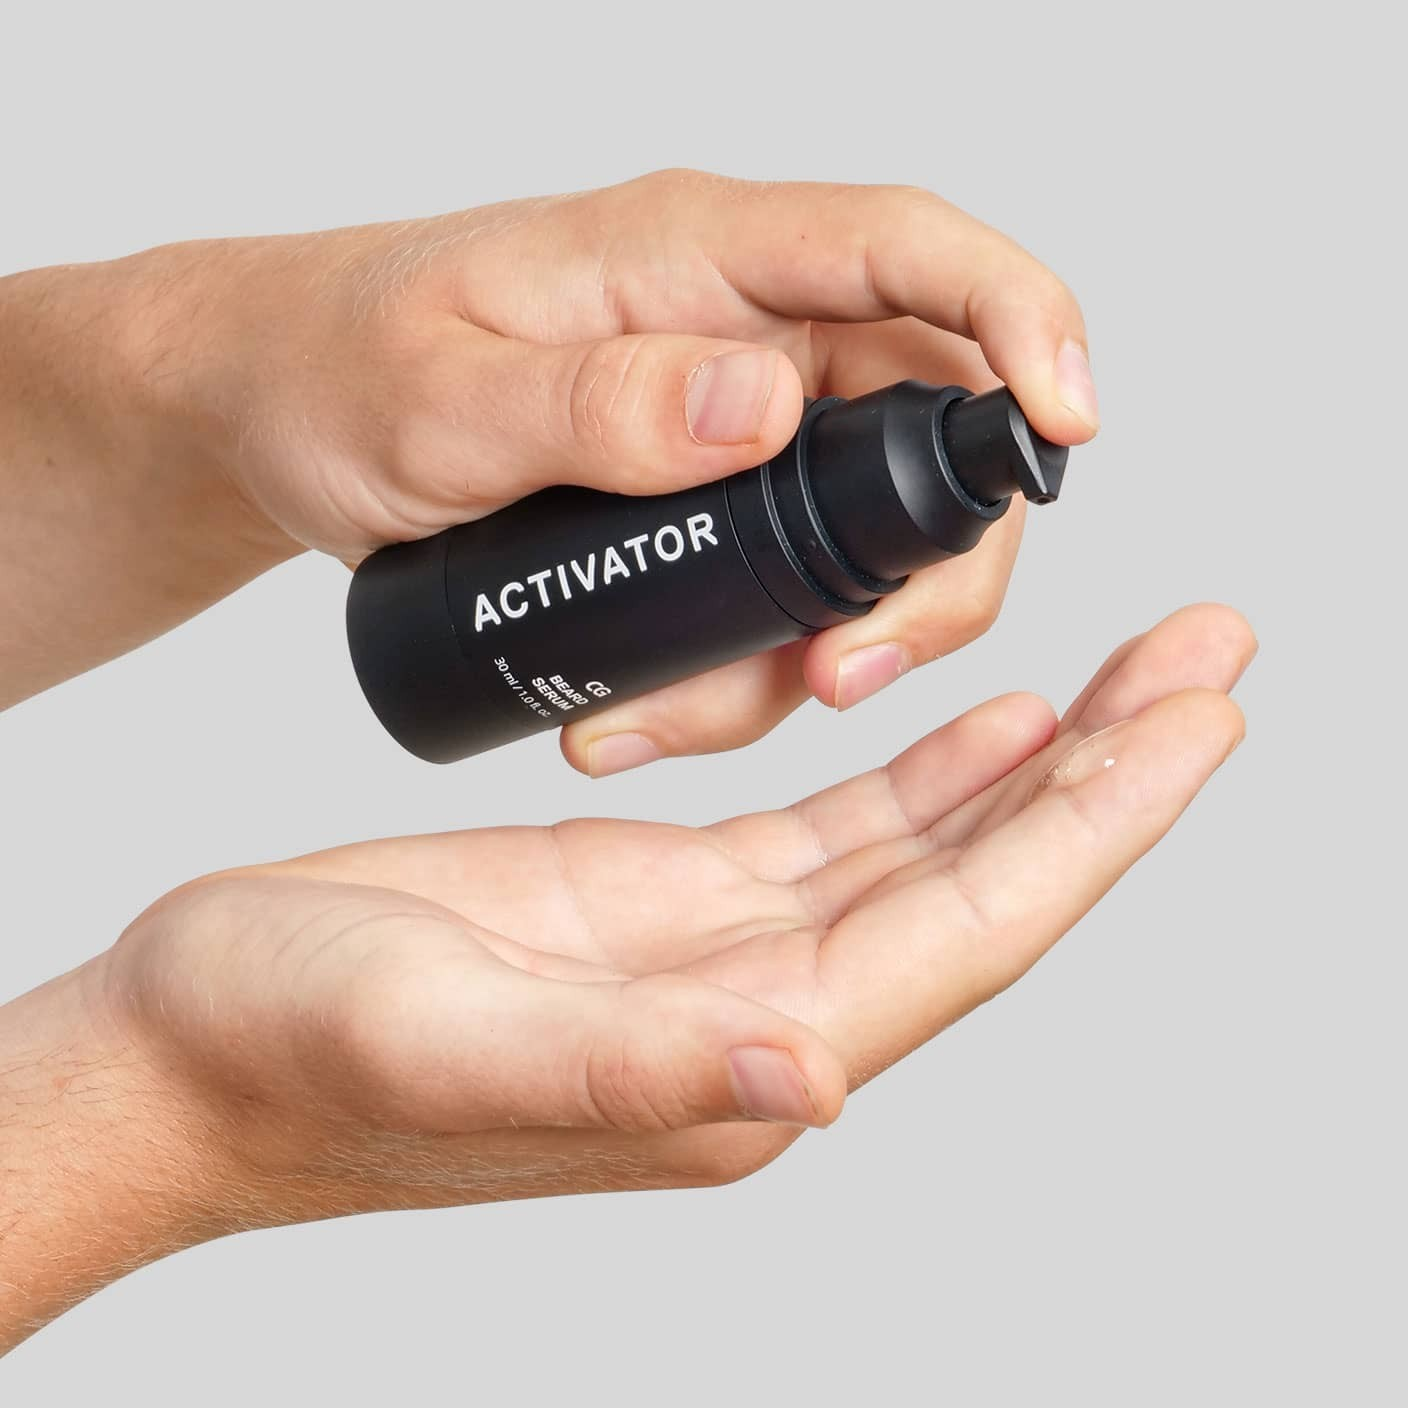 The Activator